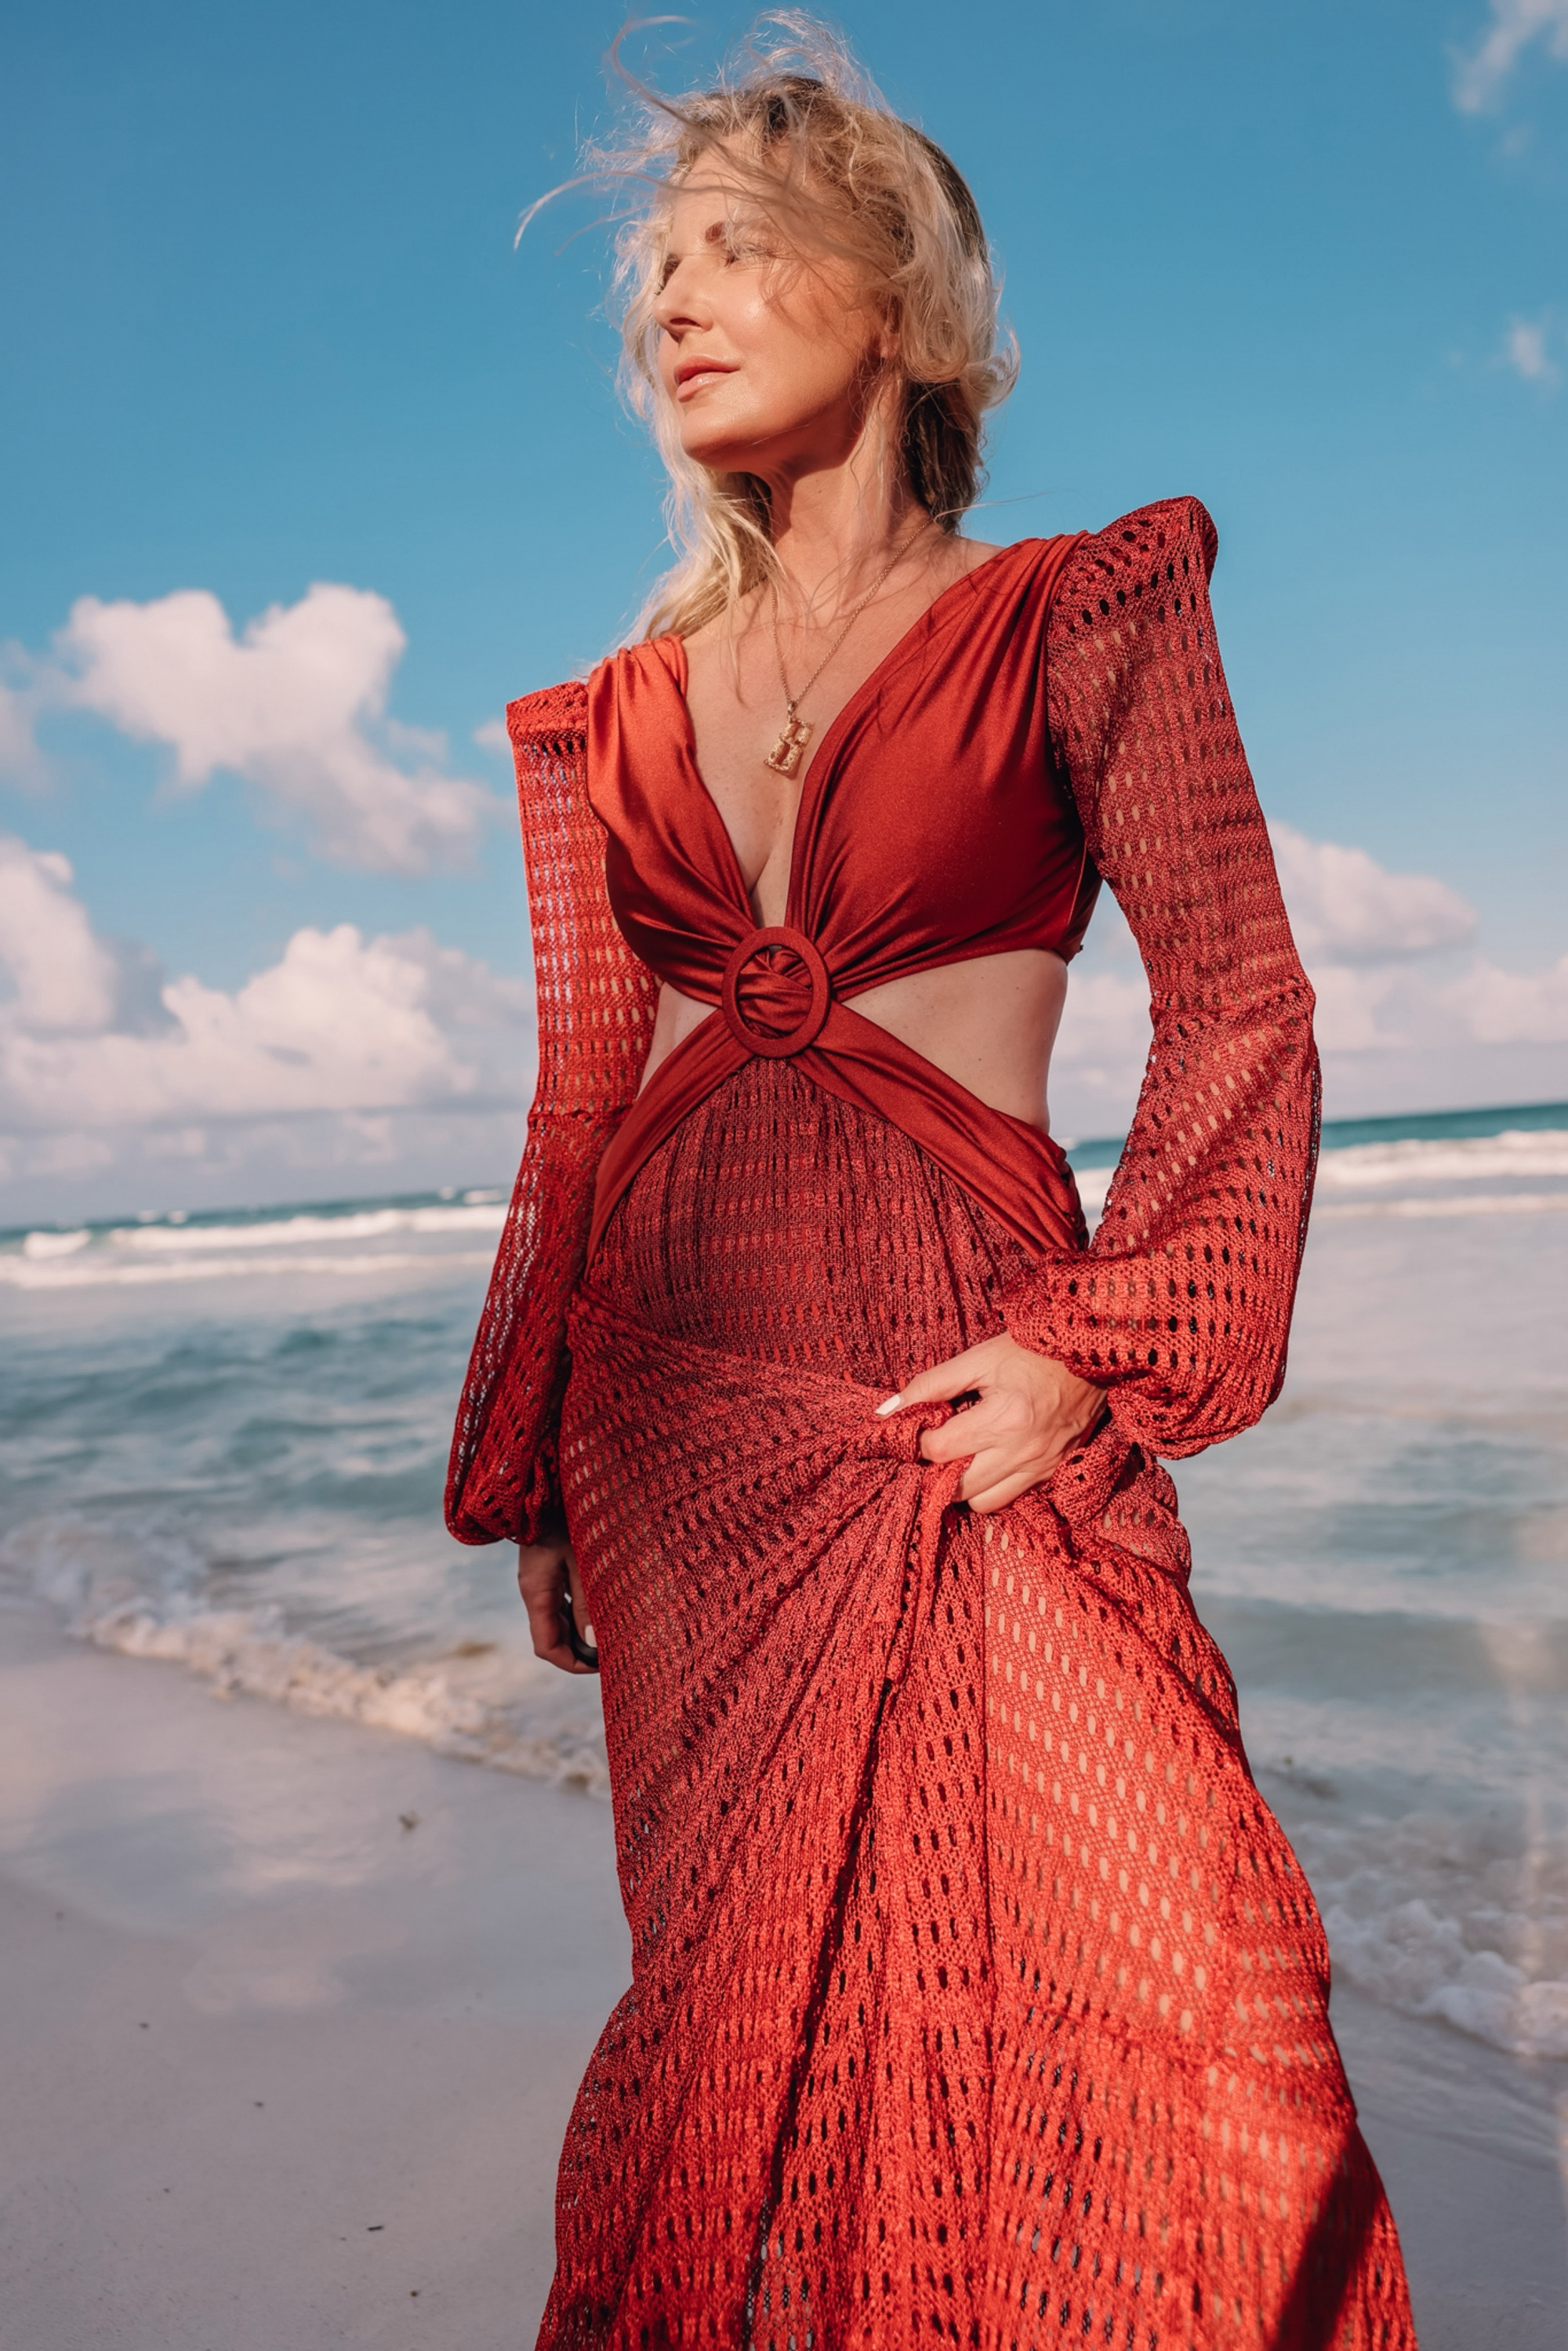 maxi dress by Patbo for the beach in crochet fabric and rust color in Tulum Mexico on fashion over 40 blogger Erin Busbee